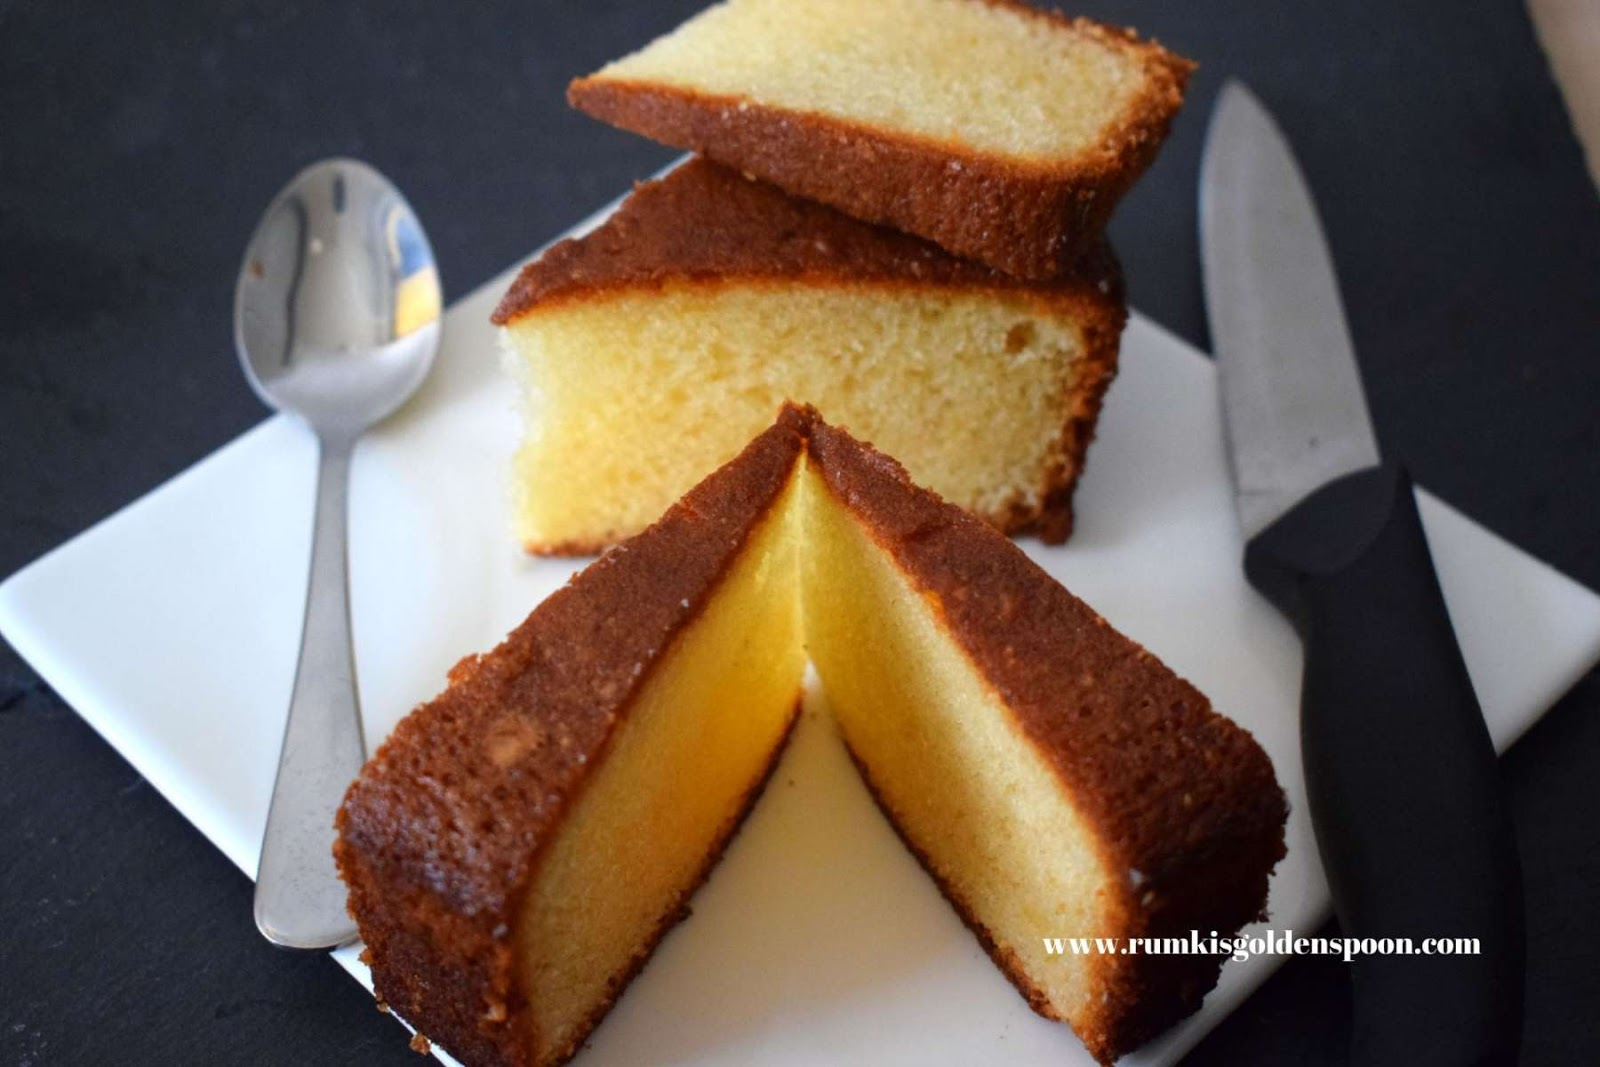 Cake Recipe, Quick and Easy, Basic Vanilla Cake (Without Hand Blender), Rumki's Golden Spoon, Sponge Cake, Tea Cake